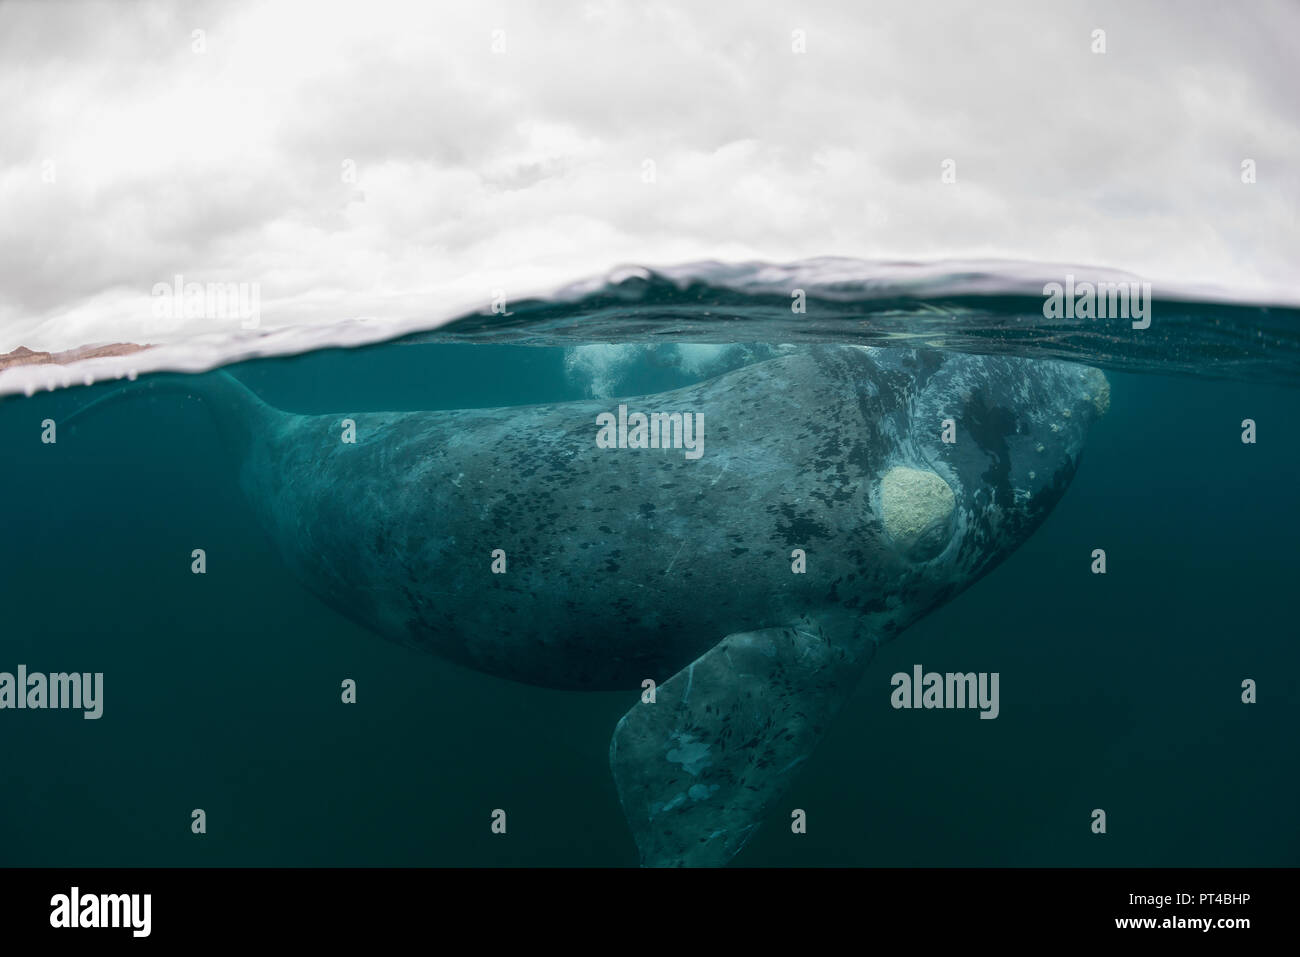 Grey southern right whale juvenile. - Stock Image